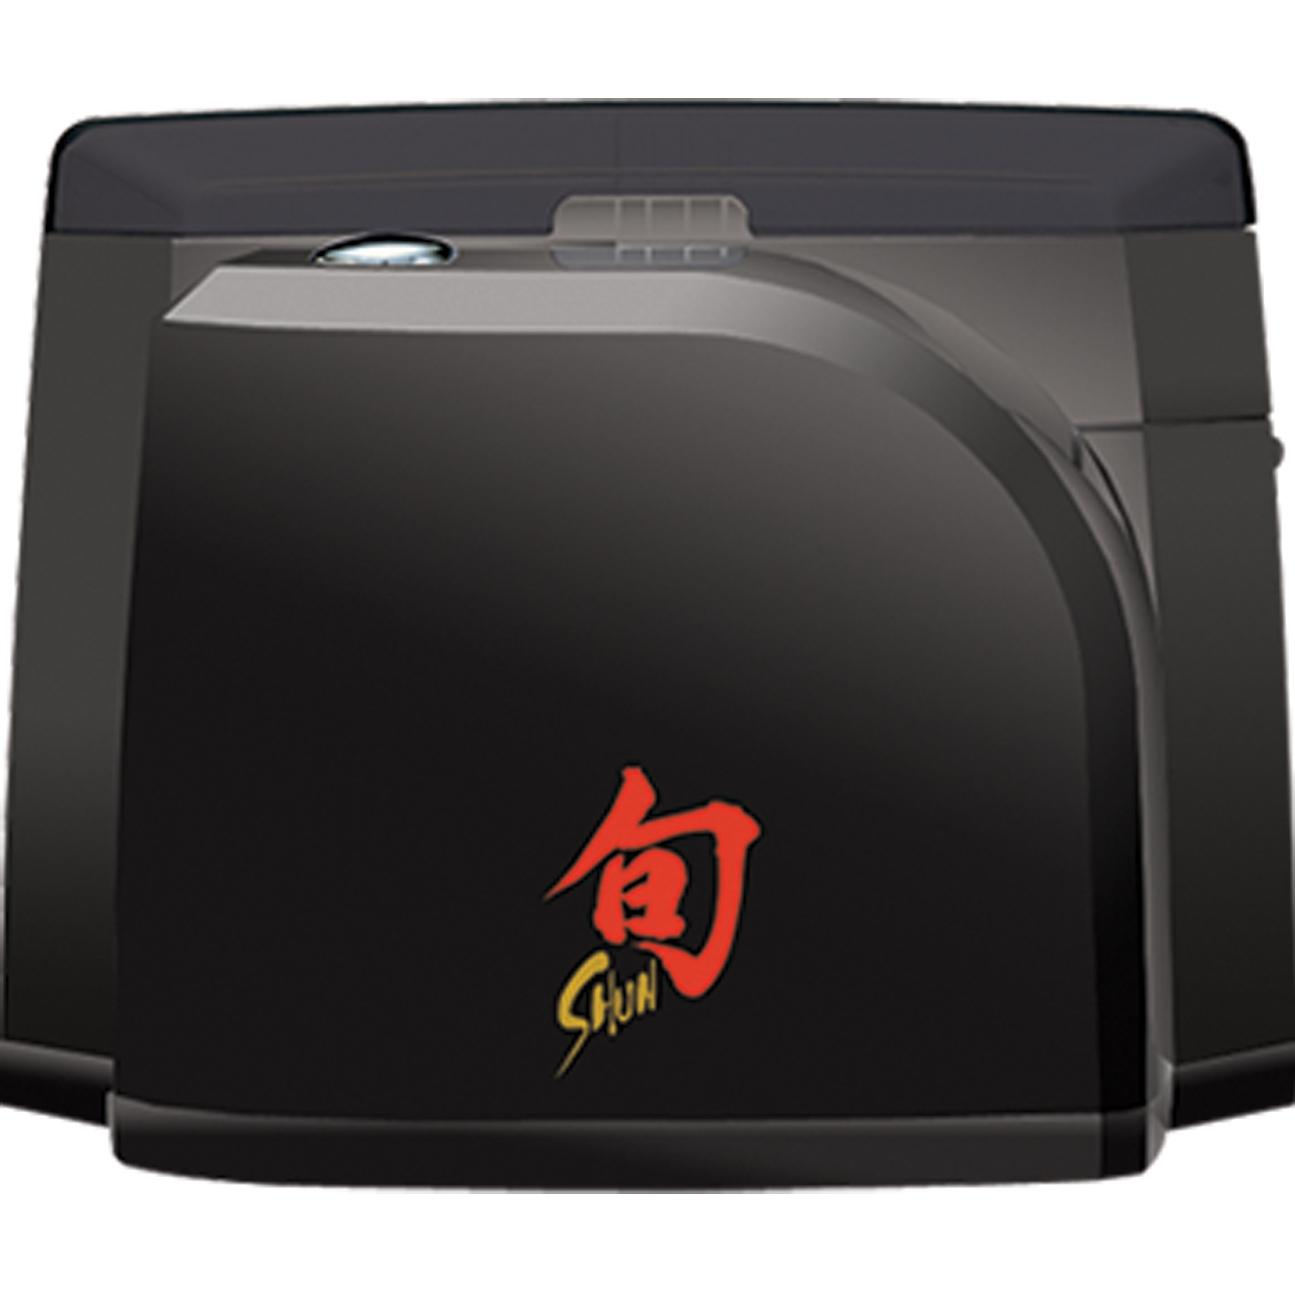 Picture of Shun Electric Knife Sharpener